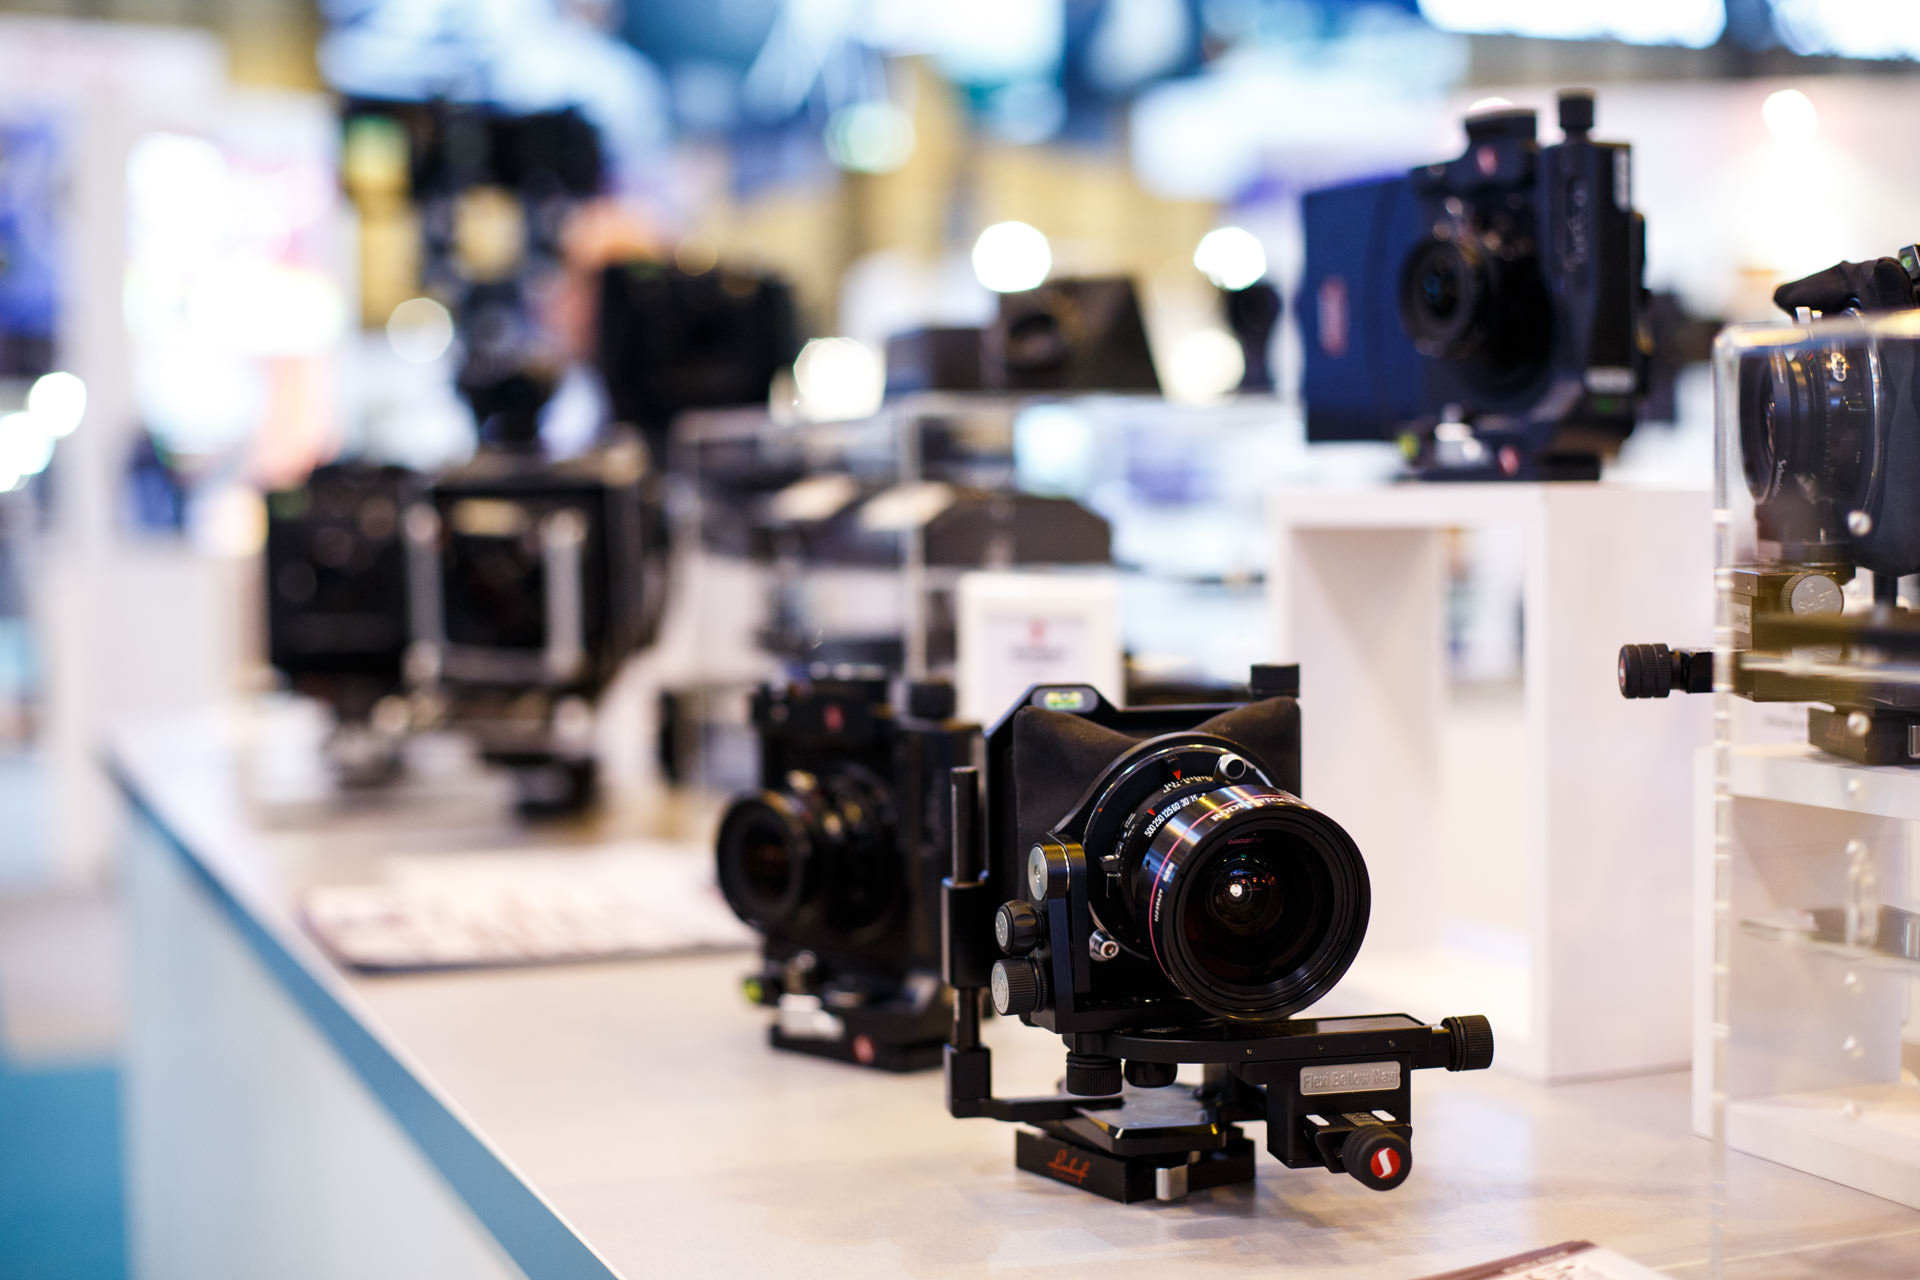 Cameras by  Linhof  and  Cambo  caught my attention,combining traditional and modern photographic technologies...